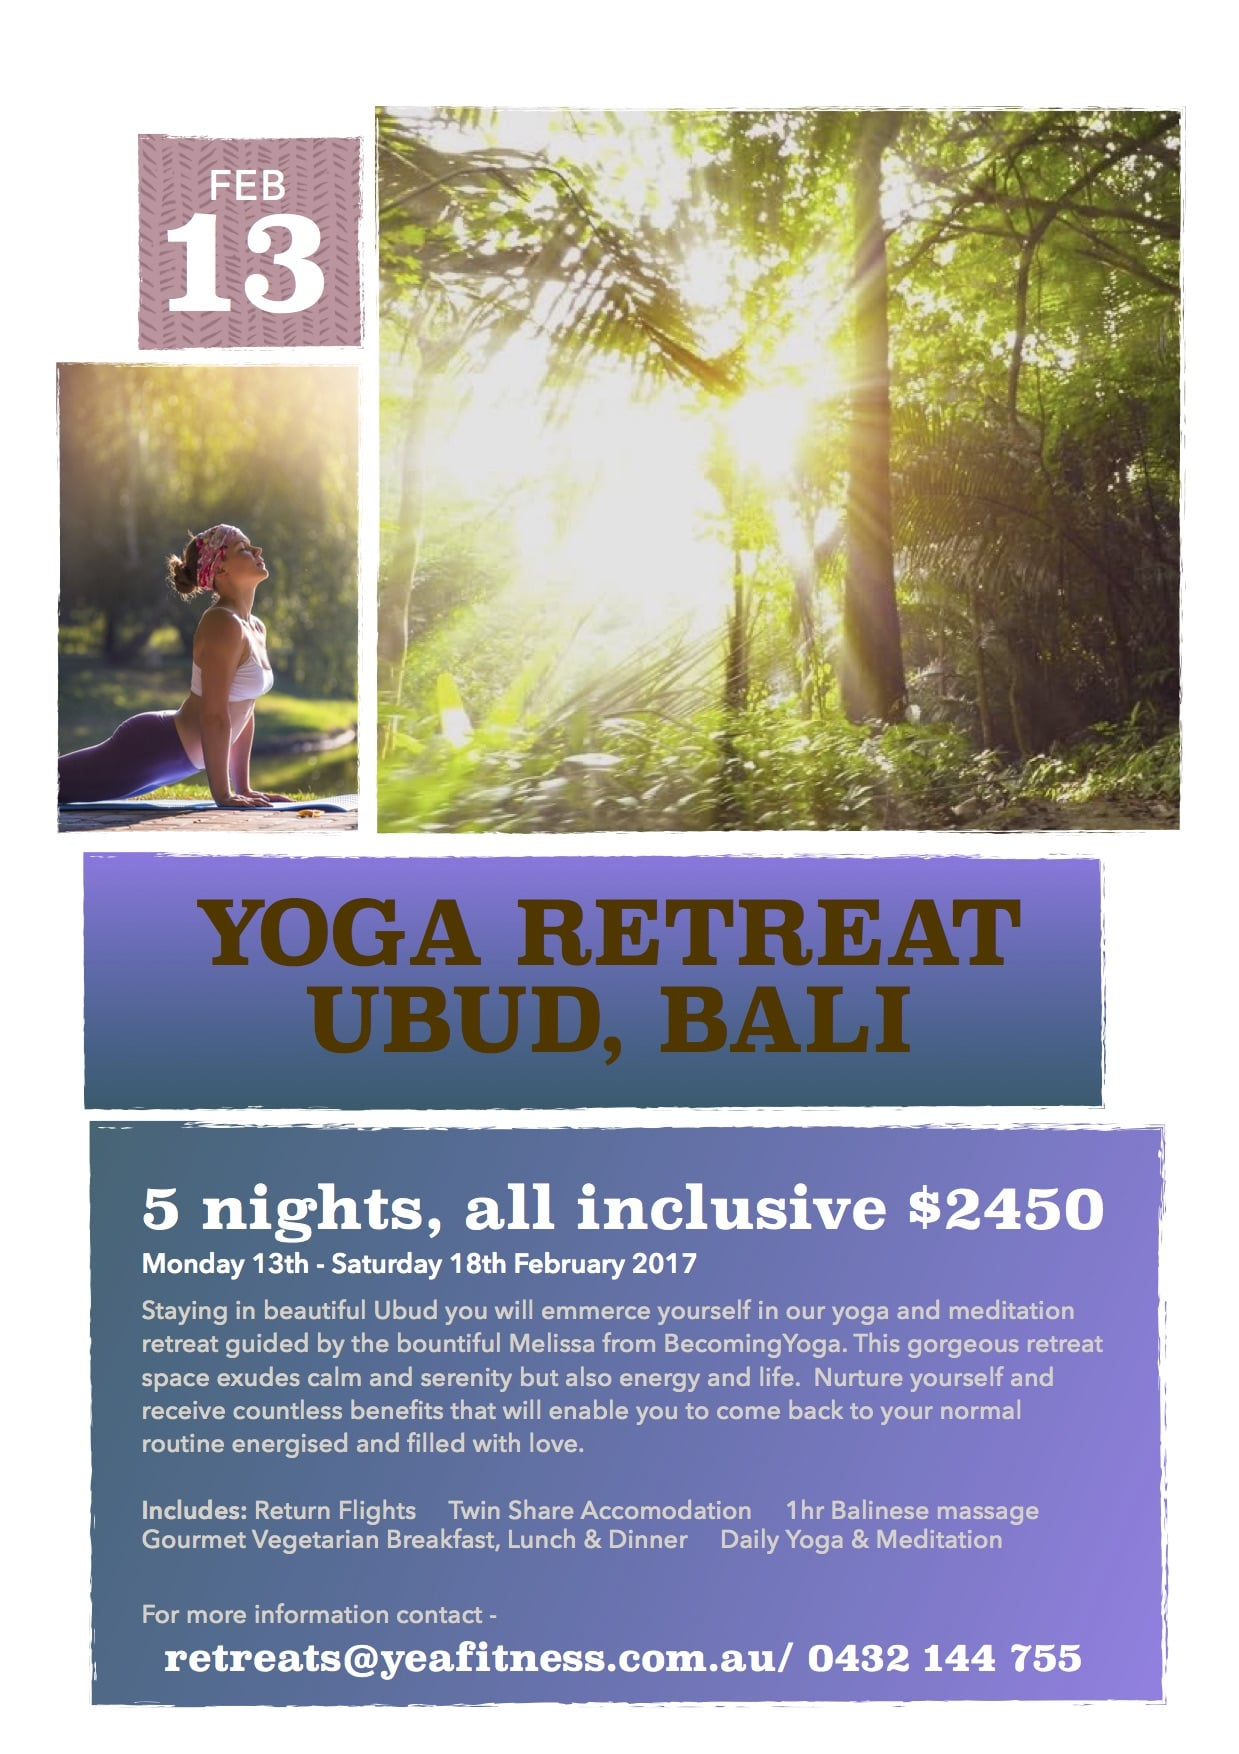 2017 is a unique energetic year of renewal and new beginnings. In celebration of this Becoming Yoga has joined with Claire from Yea Fitness to offer a gorgeous retreat experience in Ubud, Bali.